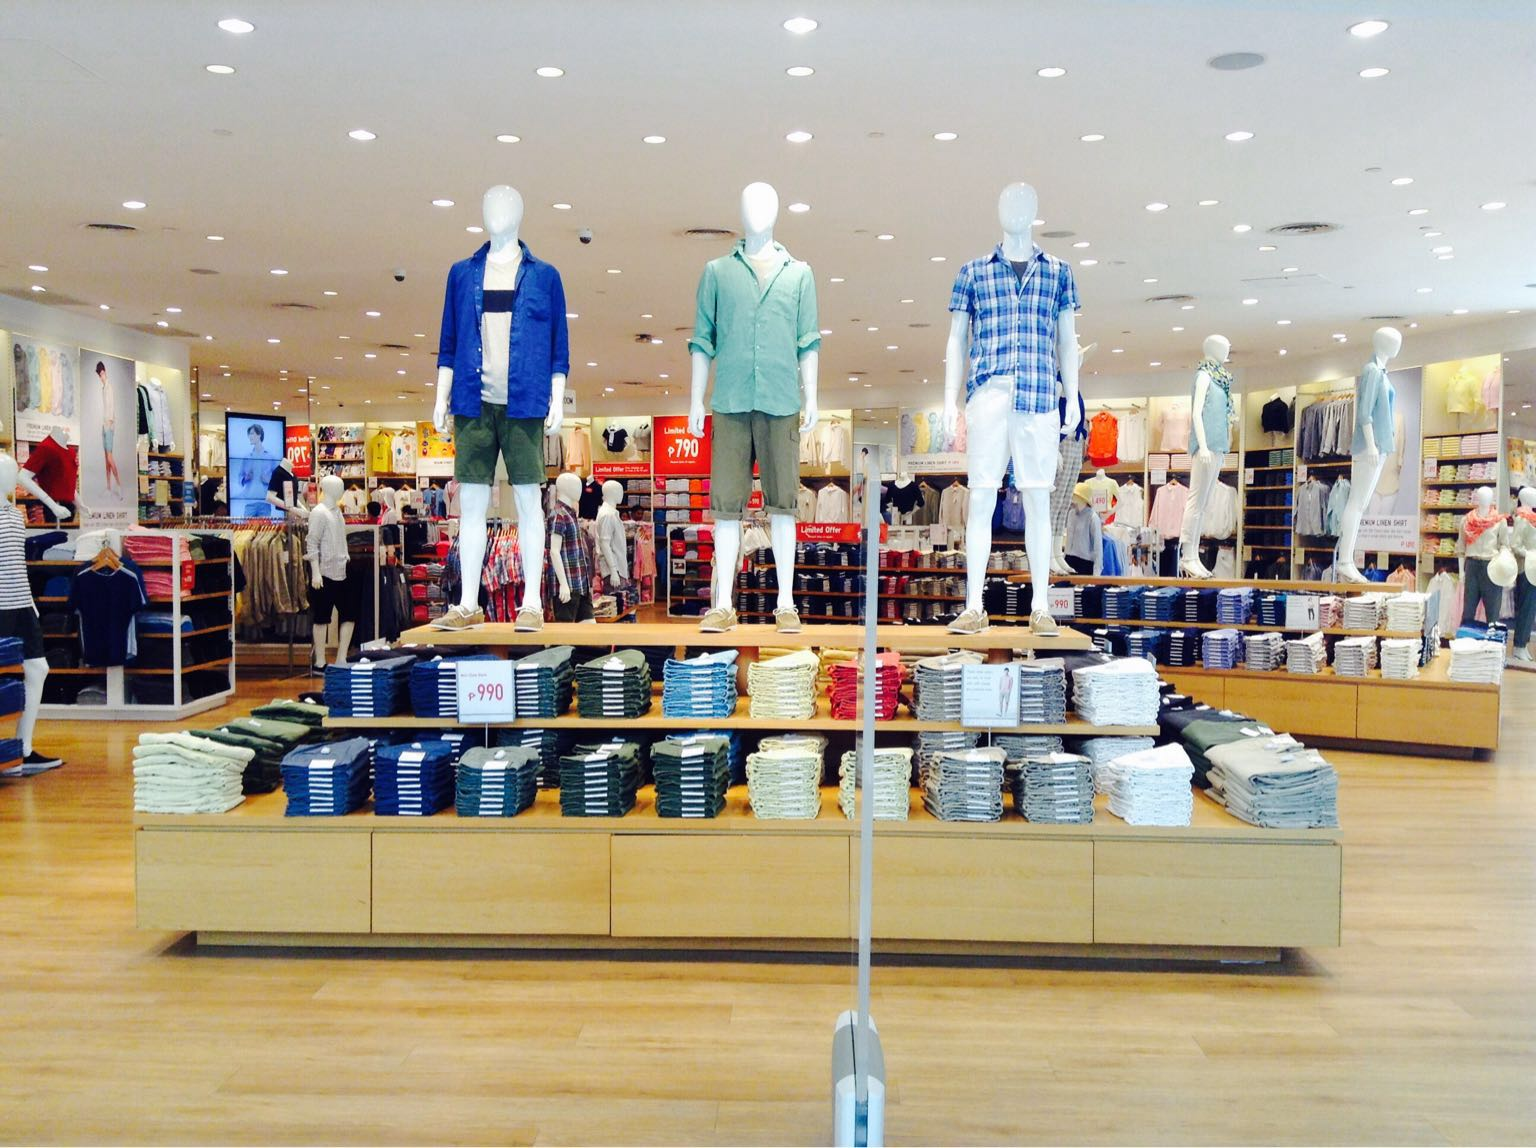 UNIQLO TO OPEN 6 NEW STORES IN THE PHILIPPINES BY MID 2016